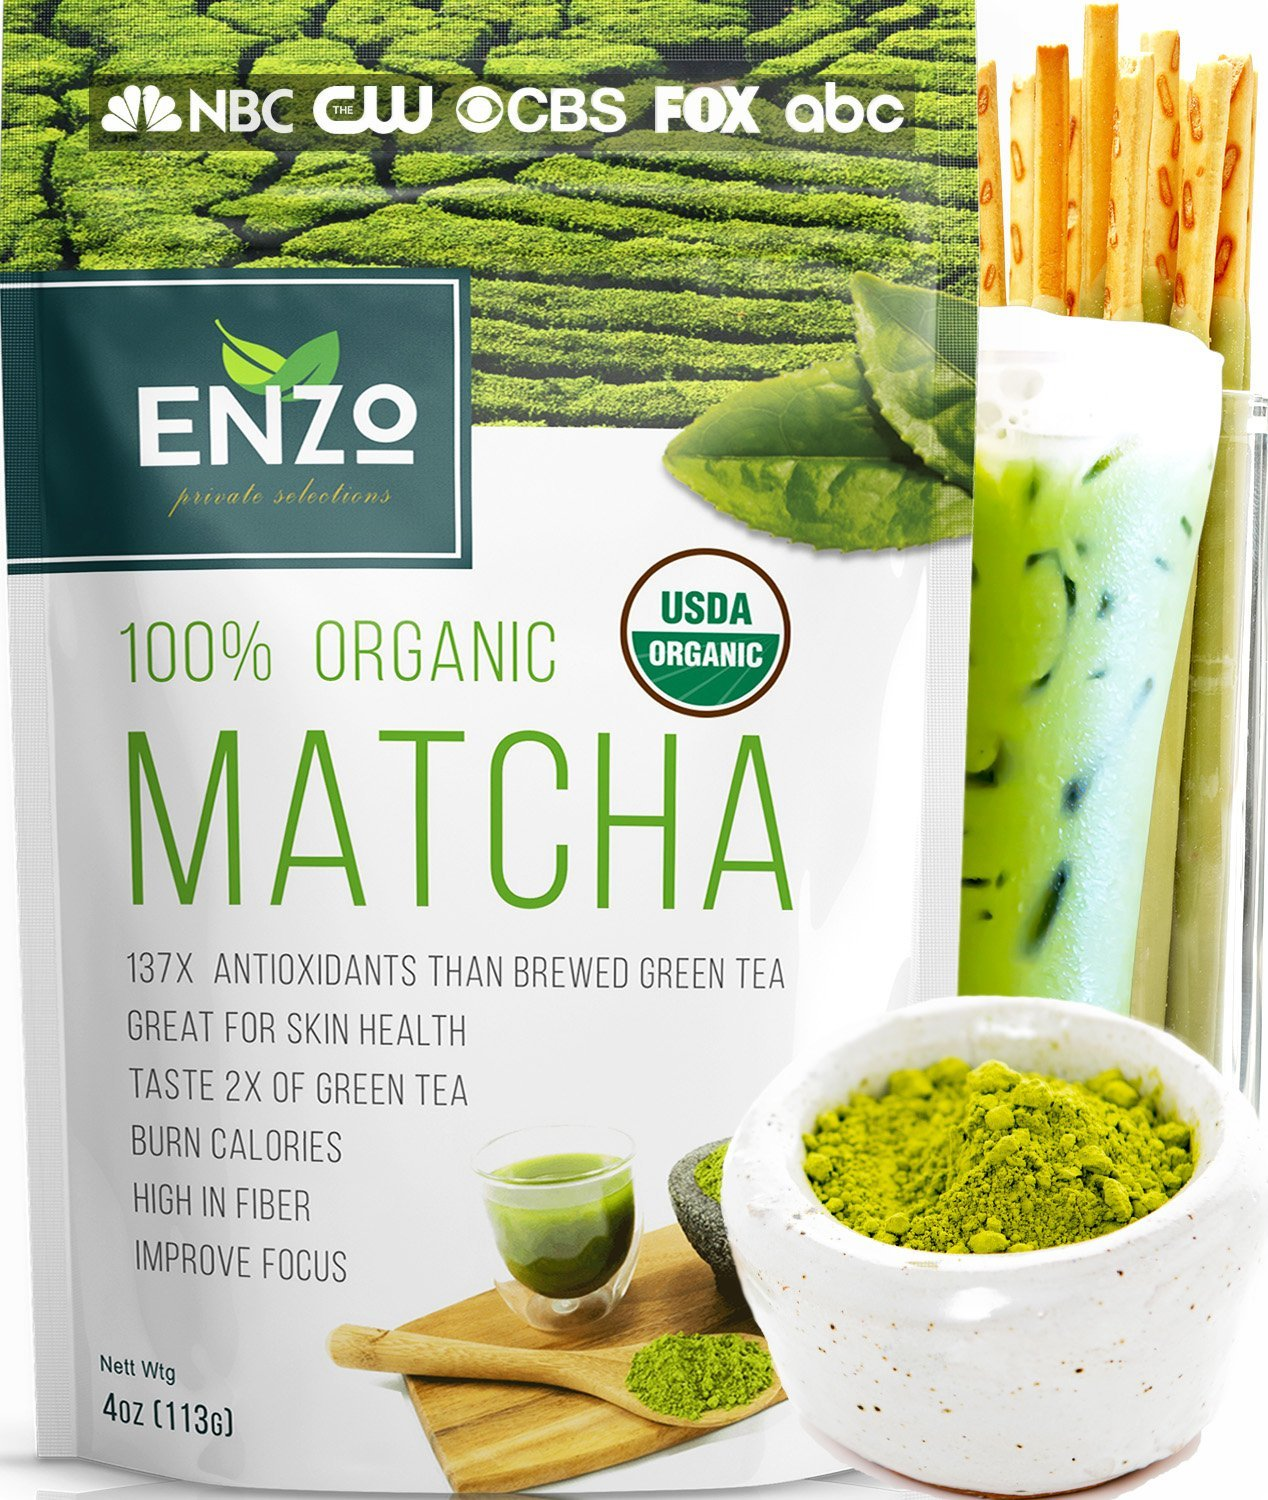 Matcha Green Tea Powder 4oz - Organic Vegan Milky Taste USDA Certified - 137x Antioxidants Over Brewed Green Tea- Great for Matcha Latte